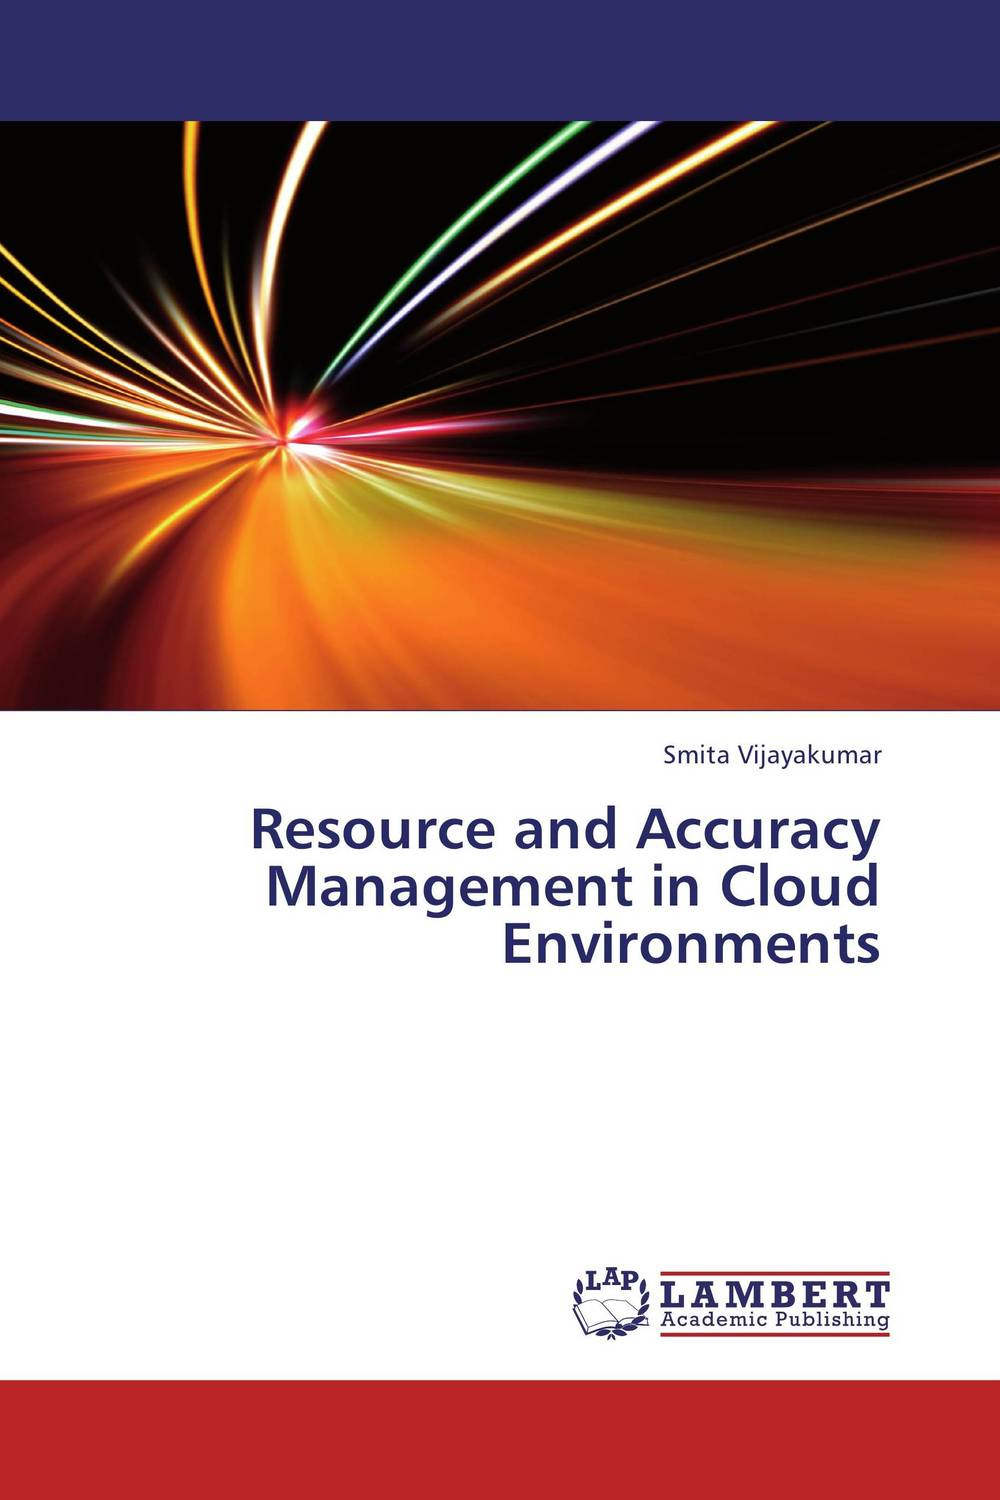 Resource and Accuracy Management in Cloud Environments evolution towards cloud